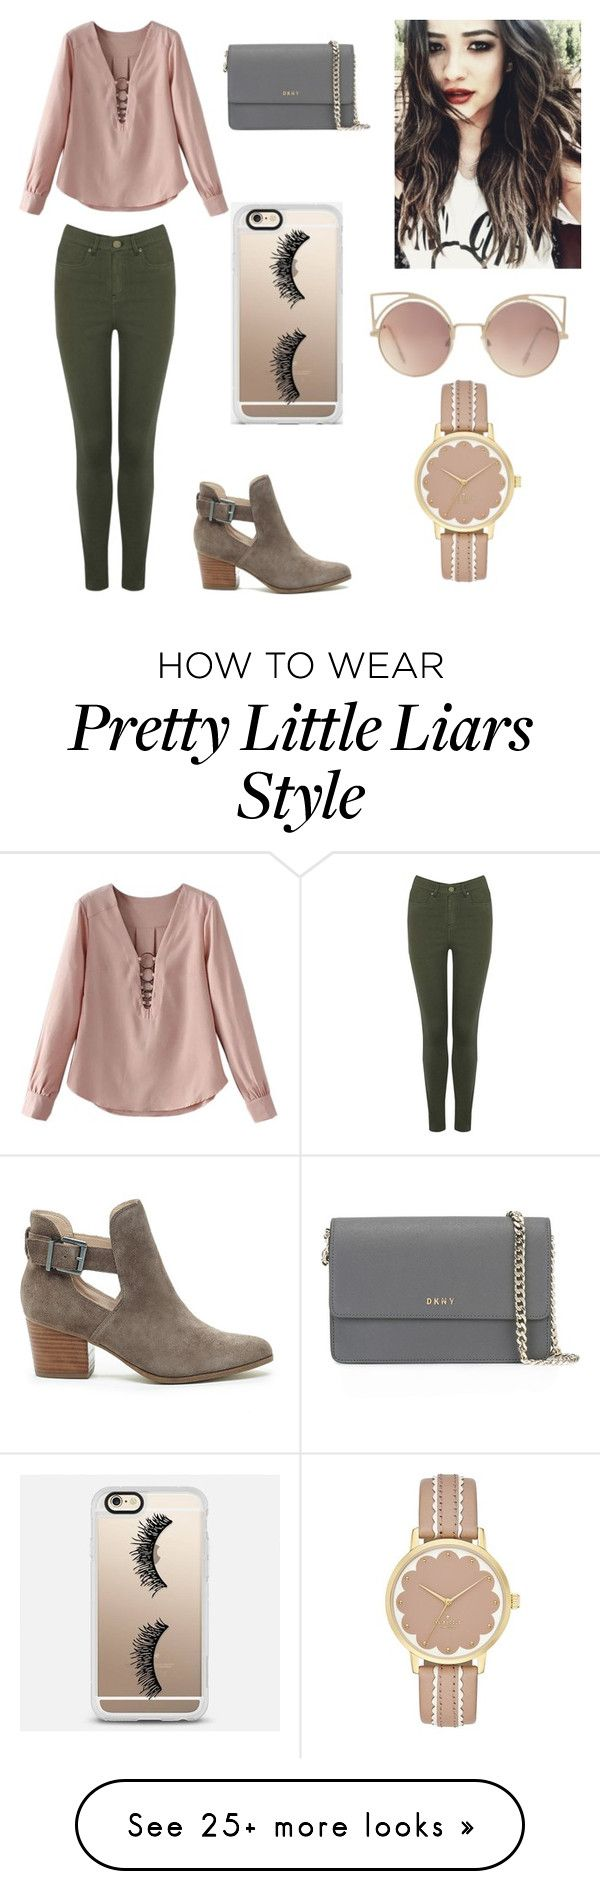 """""""Pretty Little Liars: Emily"""" by mae-emma on Polyvore featuring Oasis, Sole Society, DKNY, Casetify and MANGO"""